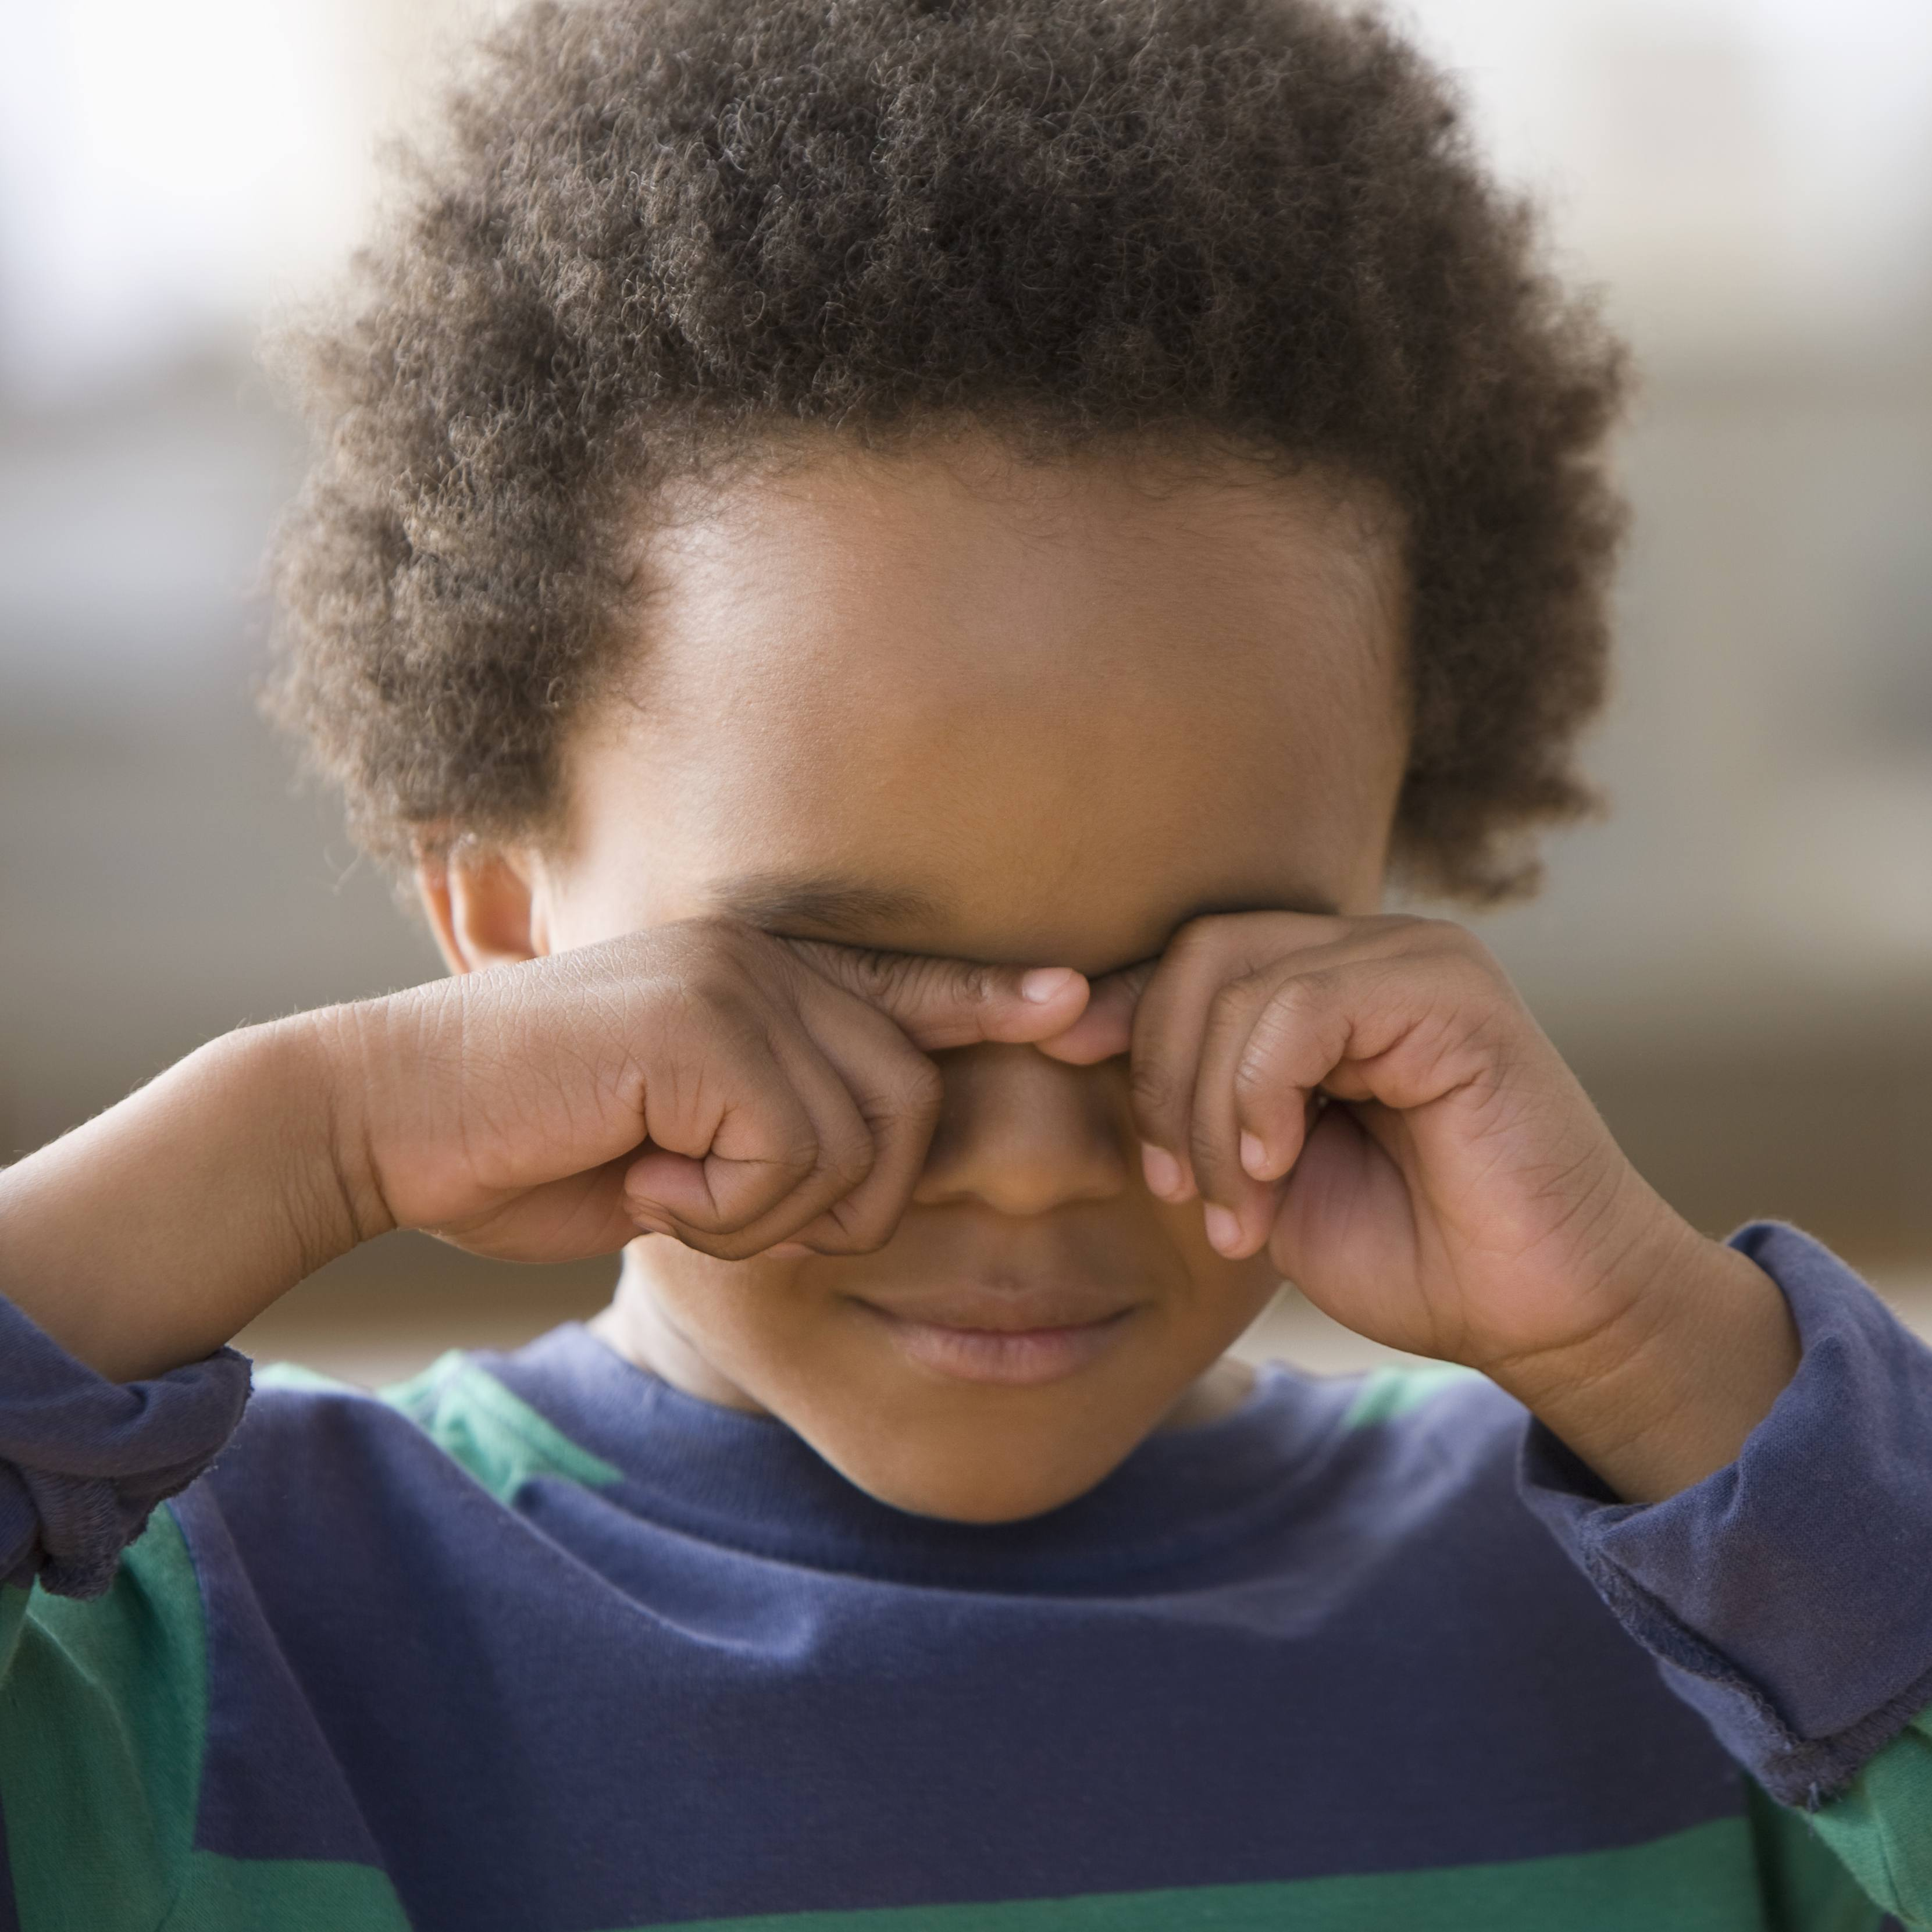 a young Black boy looking sad, scared and wiping his eyes